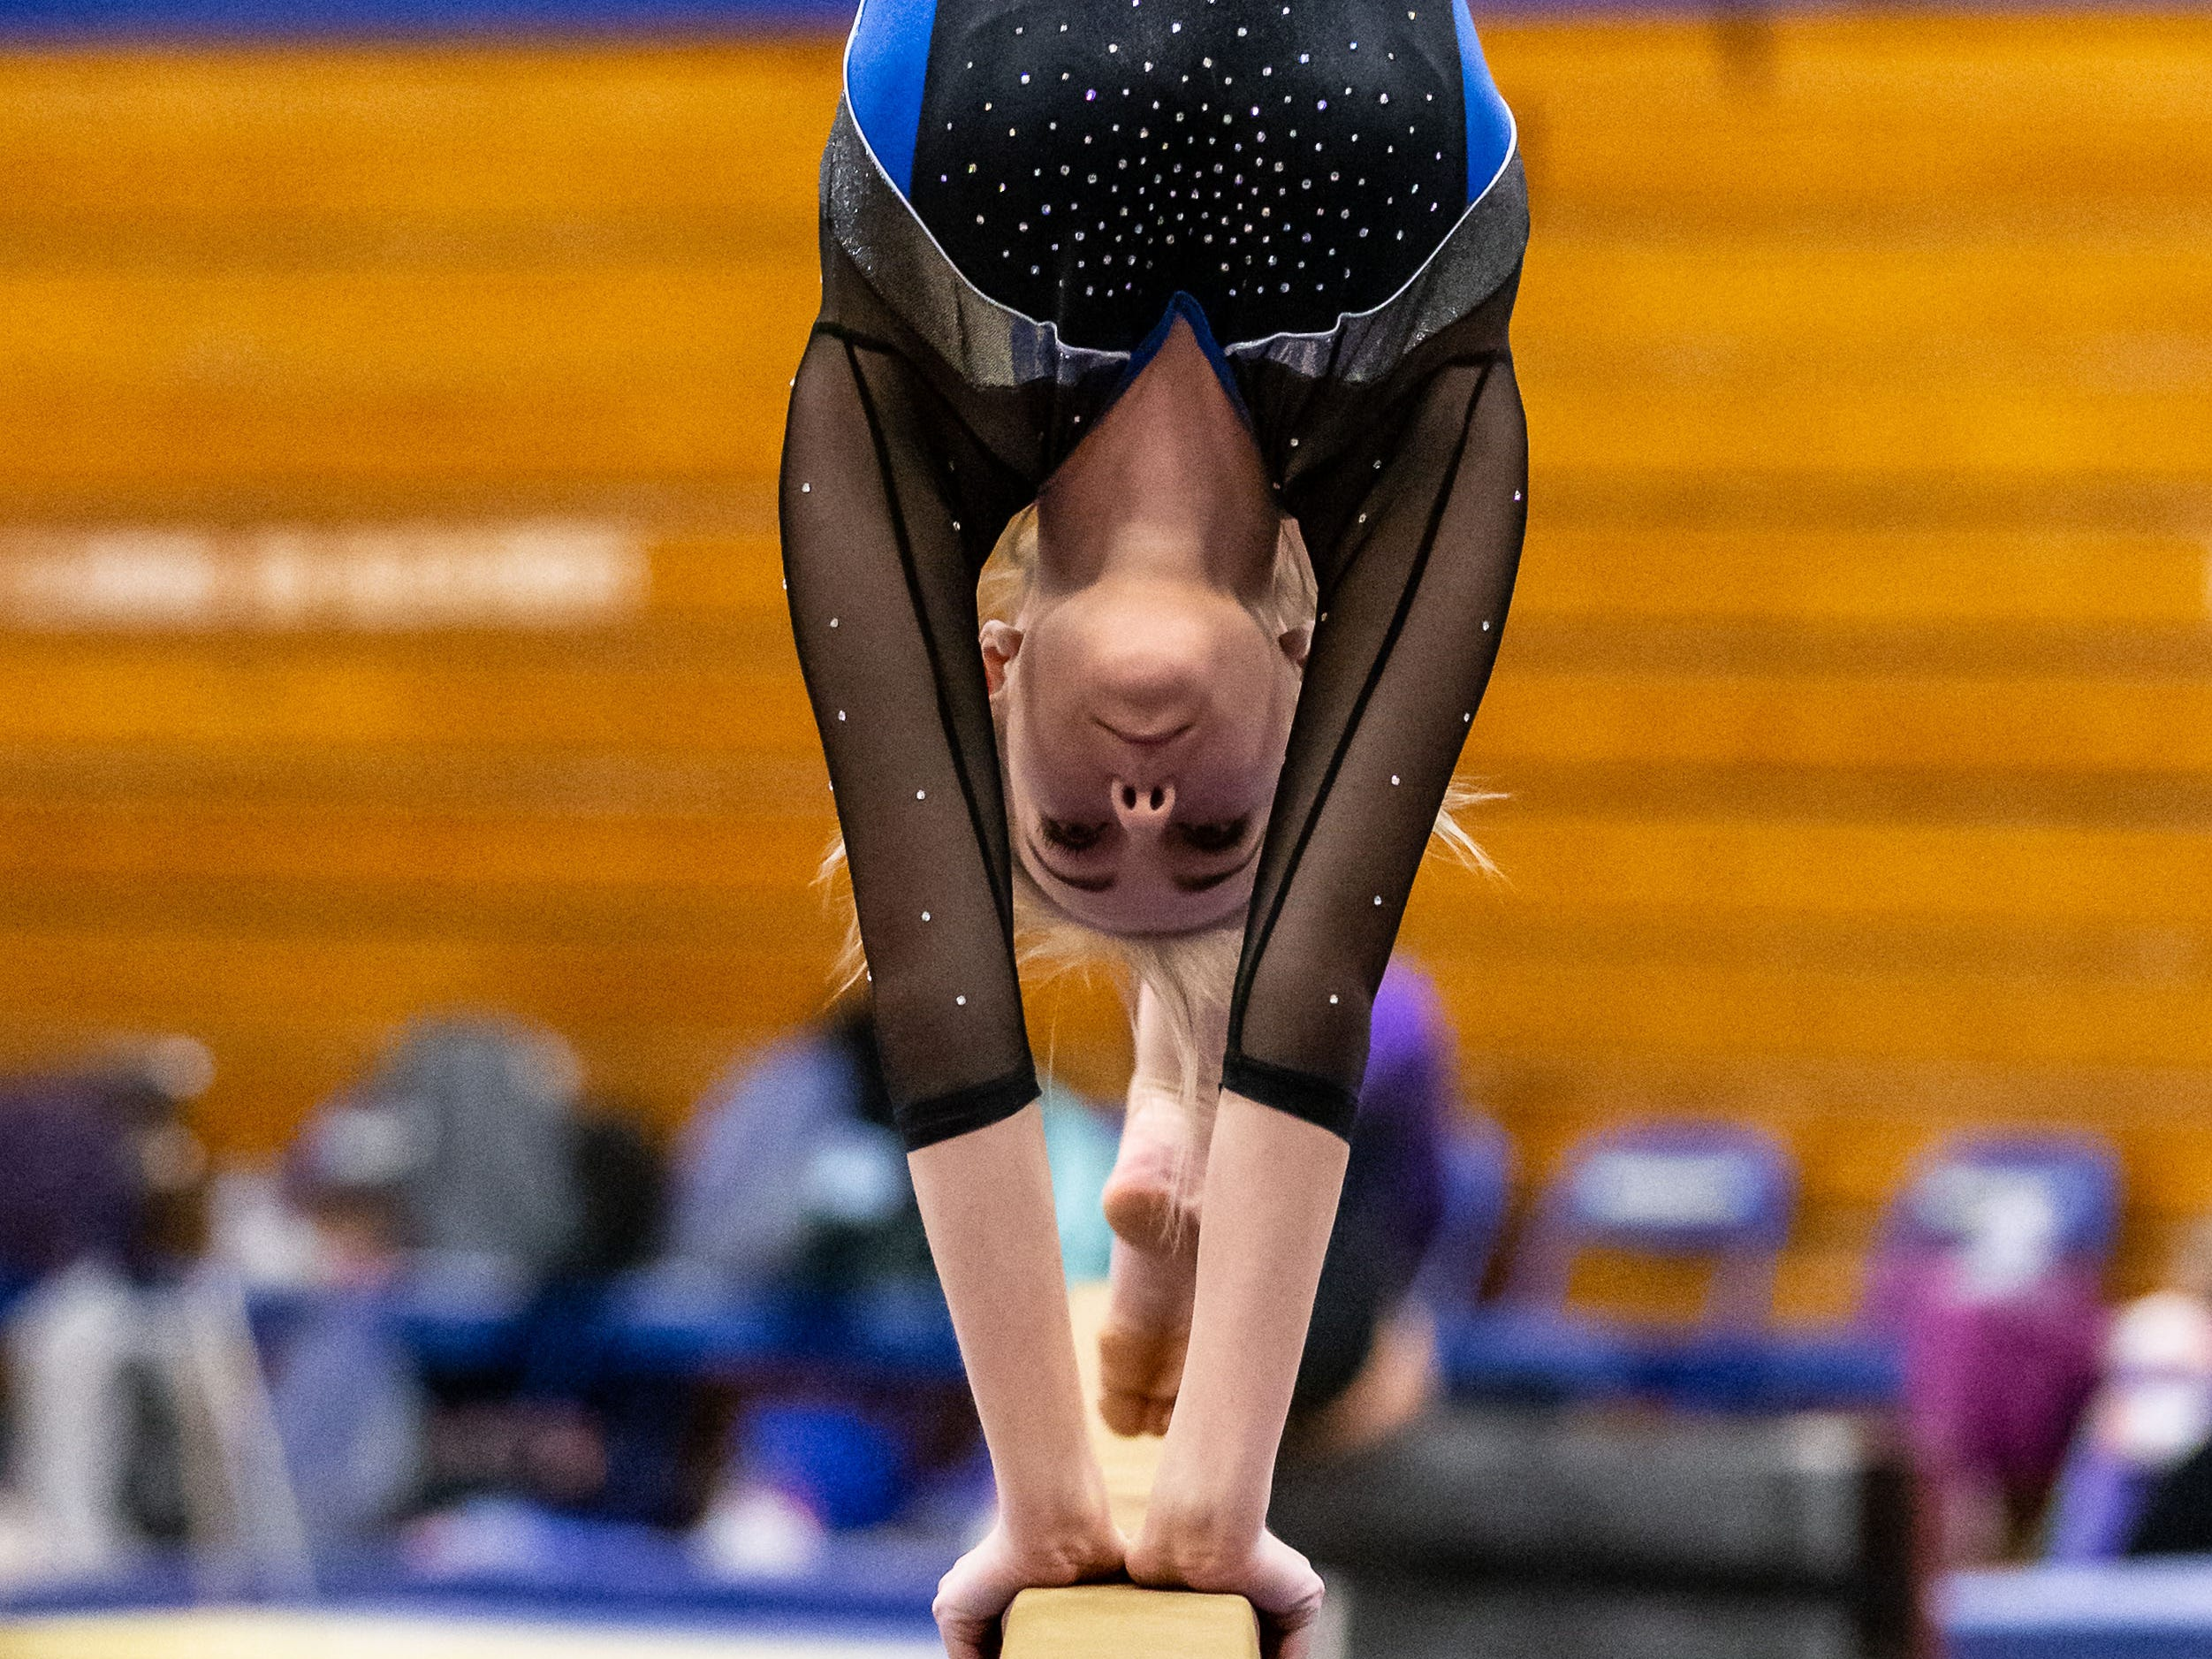 Mukwonago/Kettle Moraine co-op gymnast Mackenzie Pendleton competes on the beam during the Mukwonago Gymnastics Invite on Thursday, Jan. 10, 2019. Pendleton placed second in the All Around with a score of 33.150.